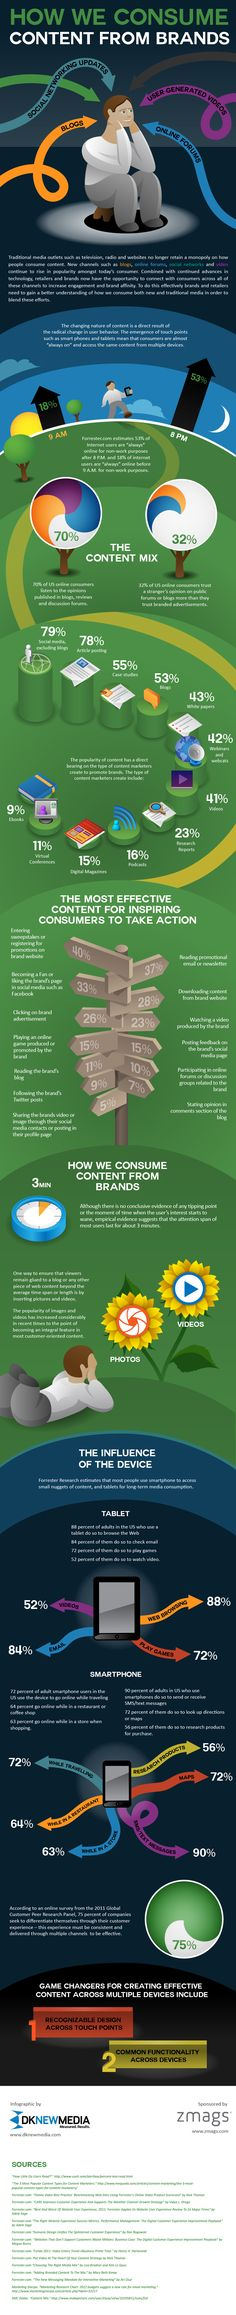 How Do We Consume Content From Brands? #infographics  Source: mediabistro.com